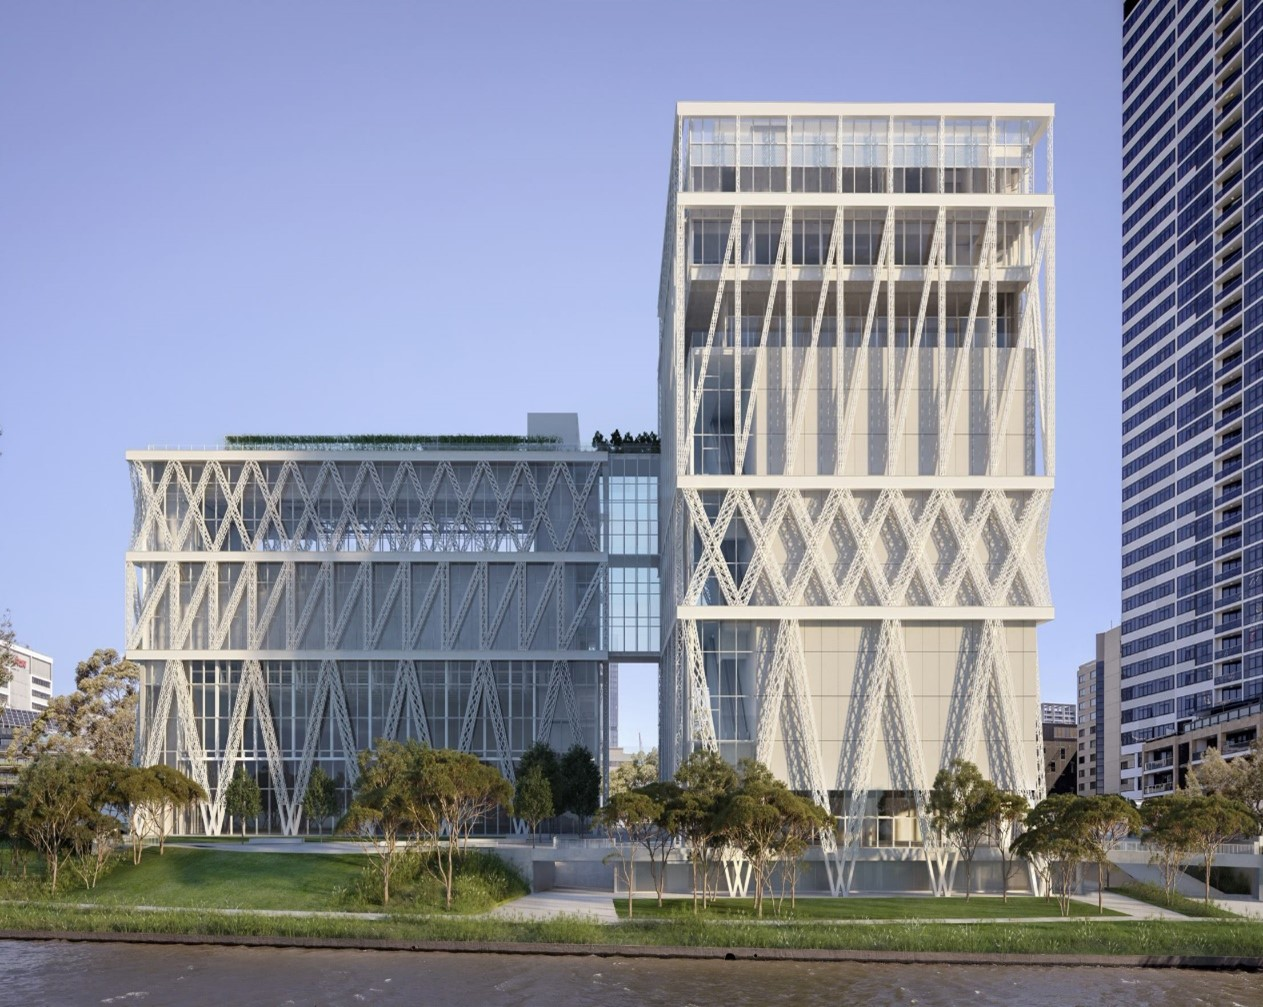 Image render of Parramatta Building, white high building with geometic shapes amongst blue skies and green